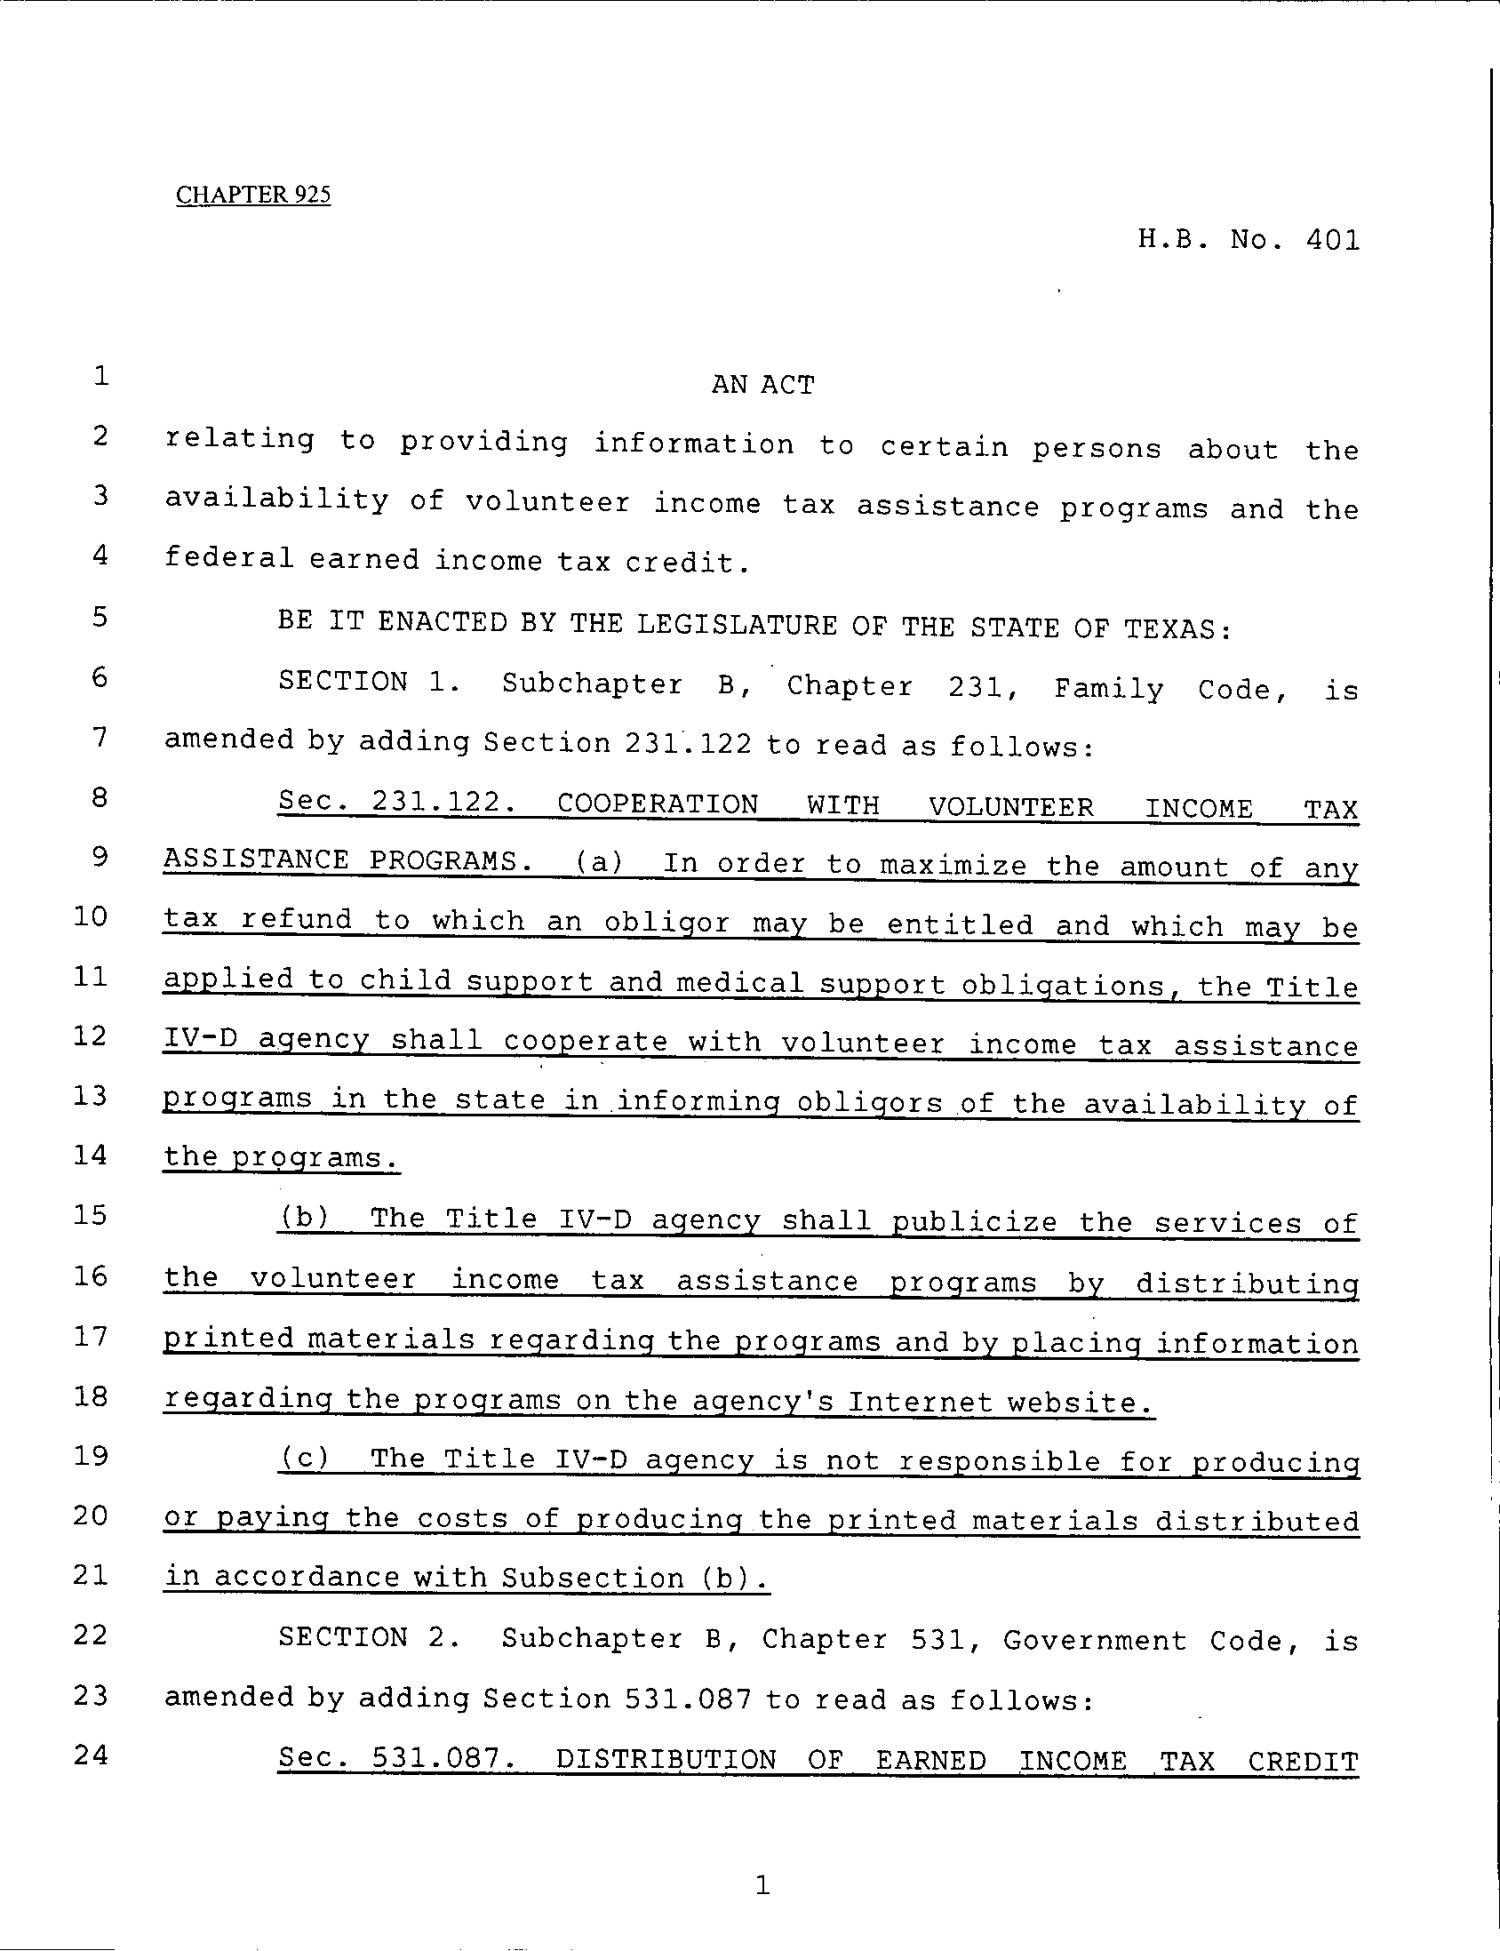 79th Texas Legislature, Regular Session, House Bill 401, Chapter 925                                                                                                      [Sequence #]: 1 of 4